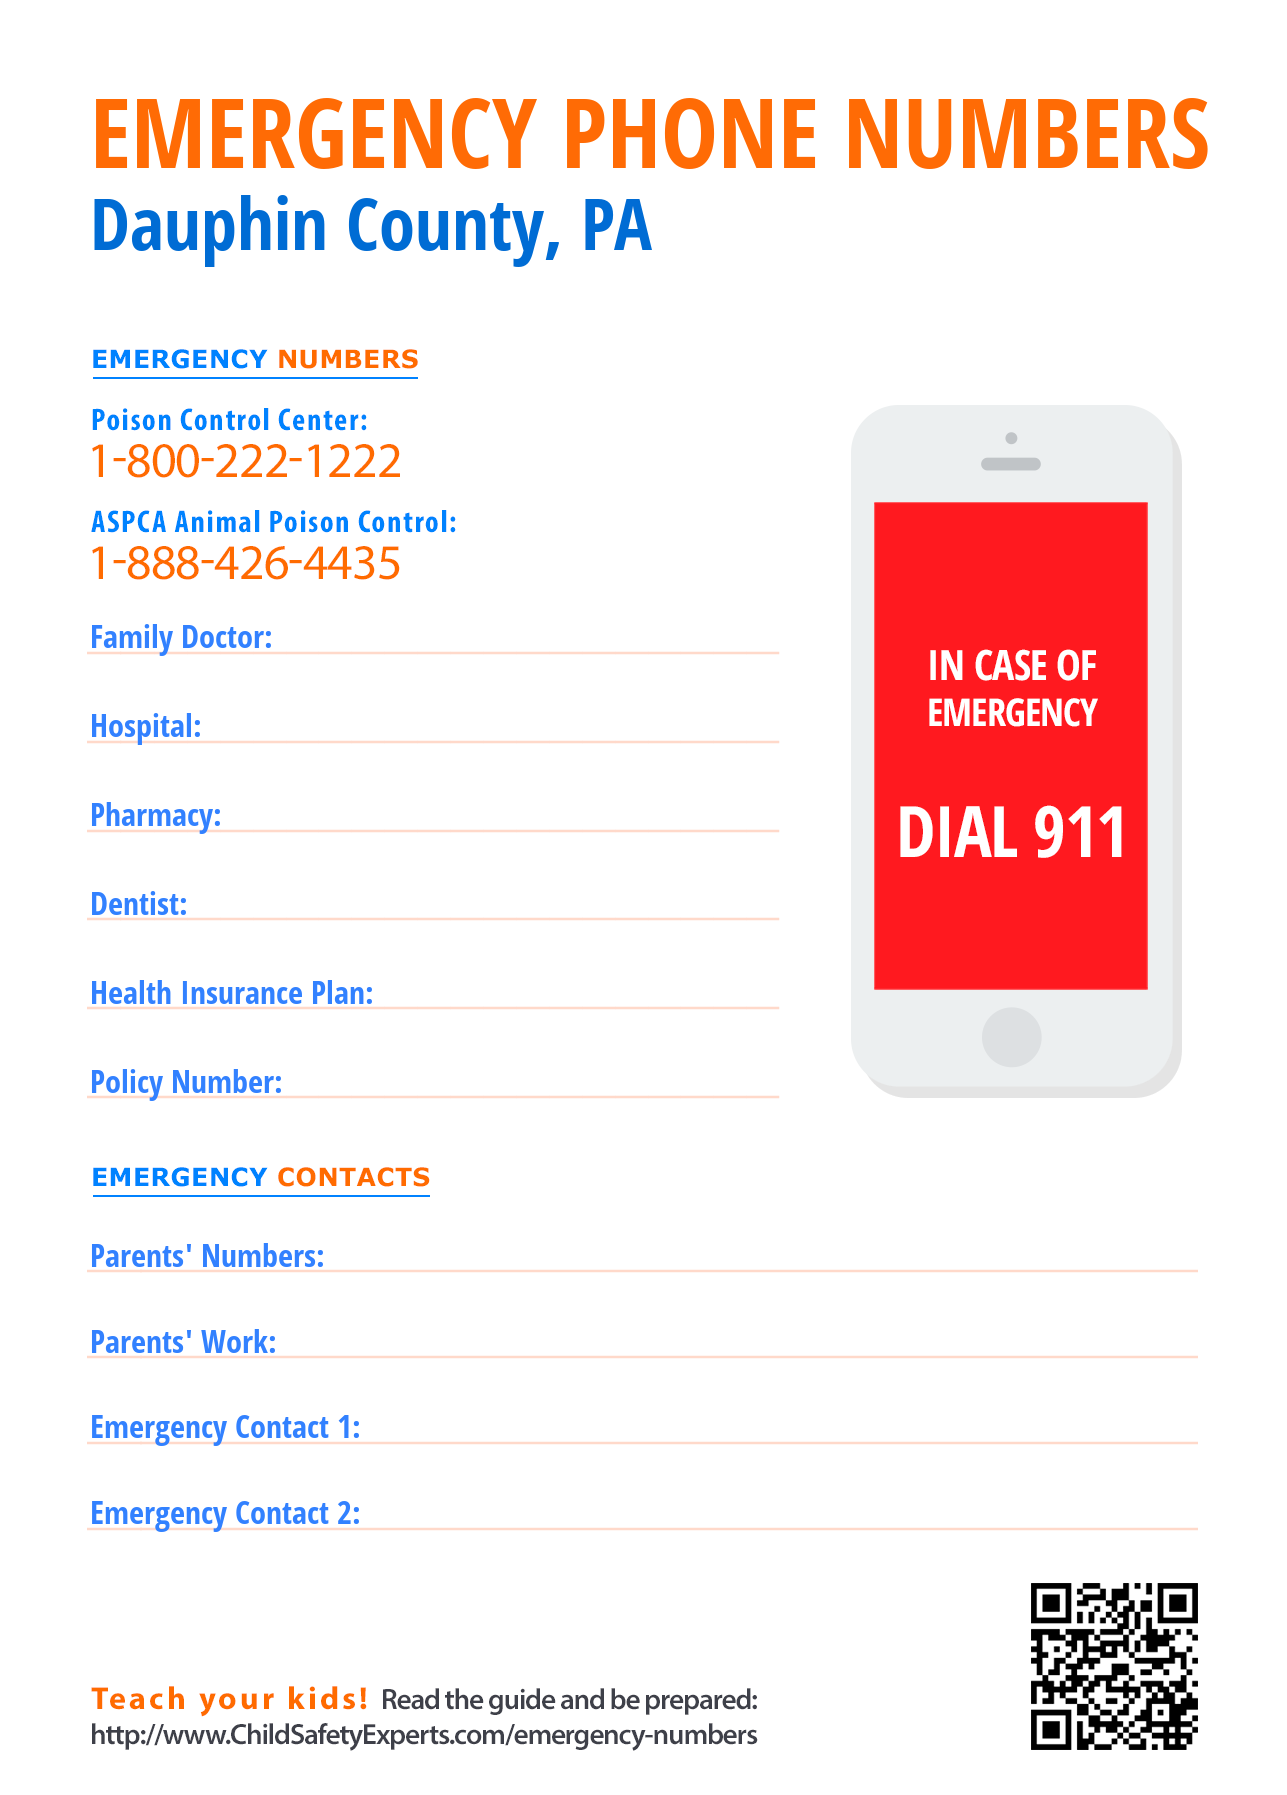 Important emergency phone numbers in Dauphin County, Pennsylvania